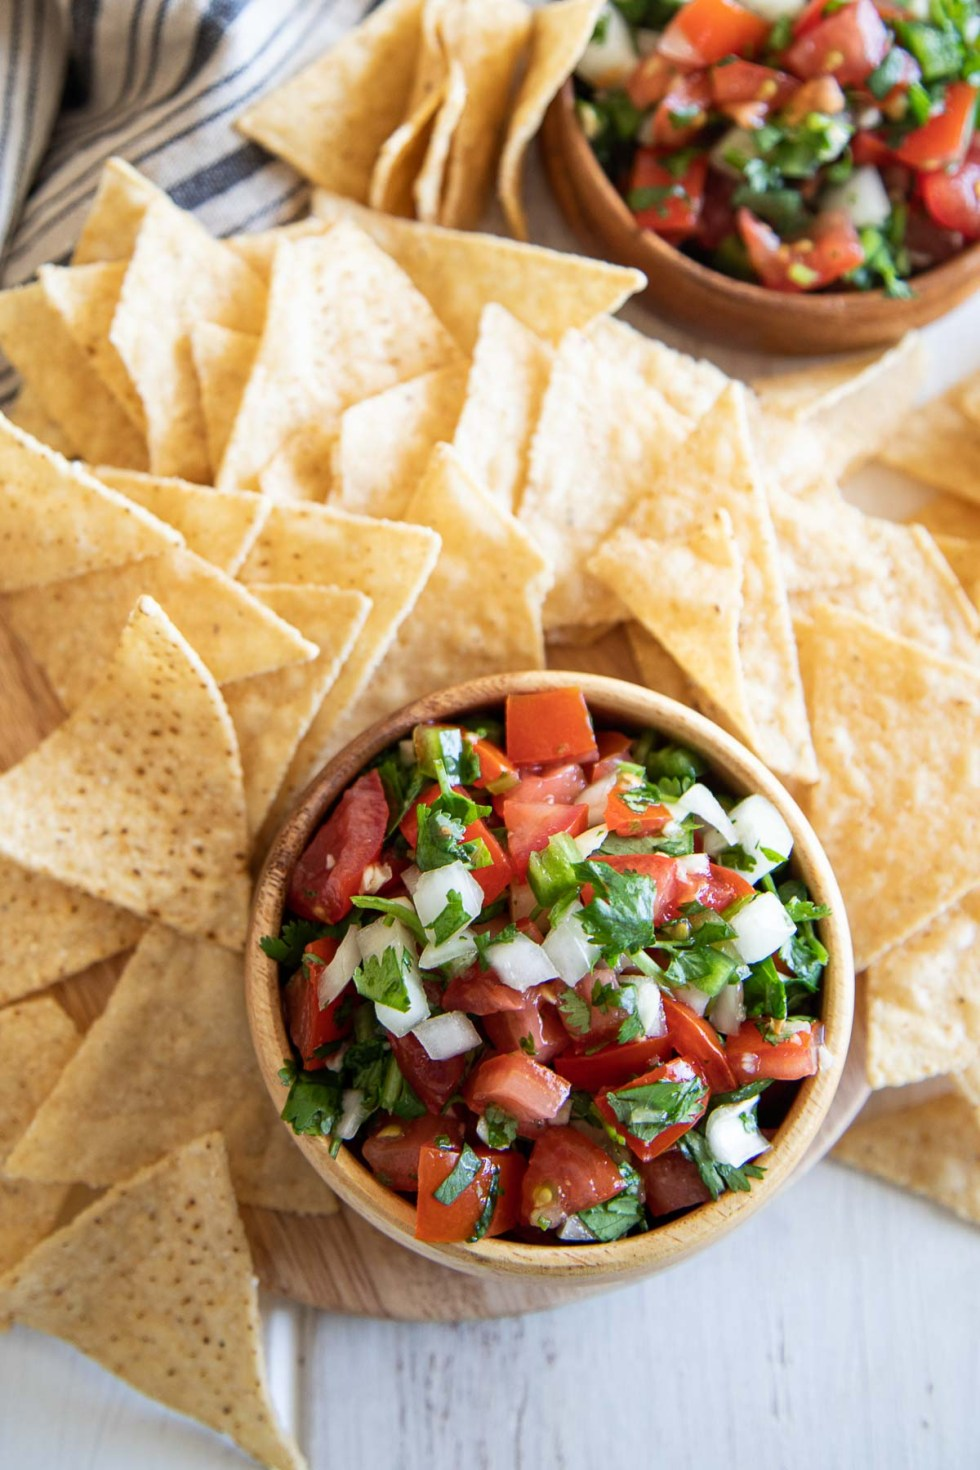 Looking down at Homemade Pico de Gallo Salsa and Chips. Appetizer.